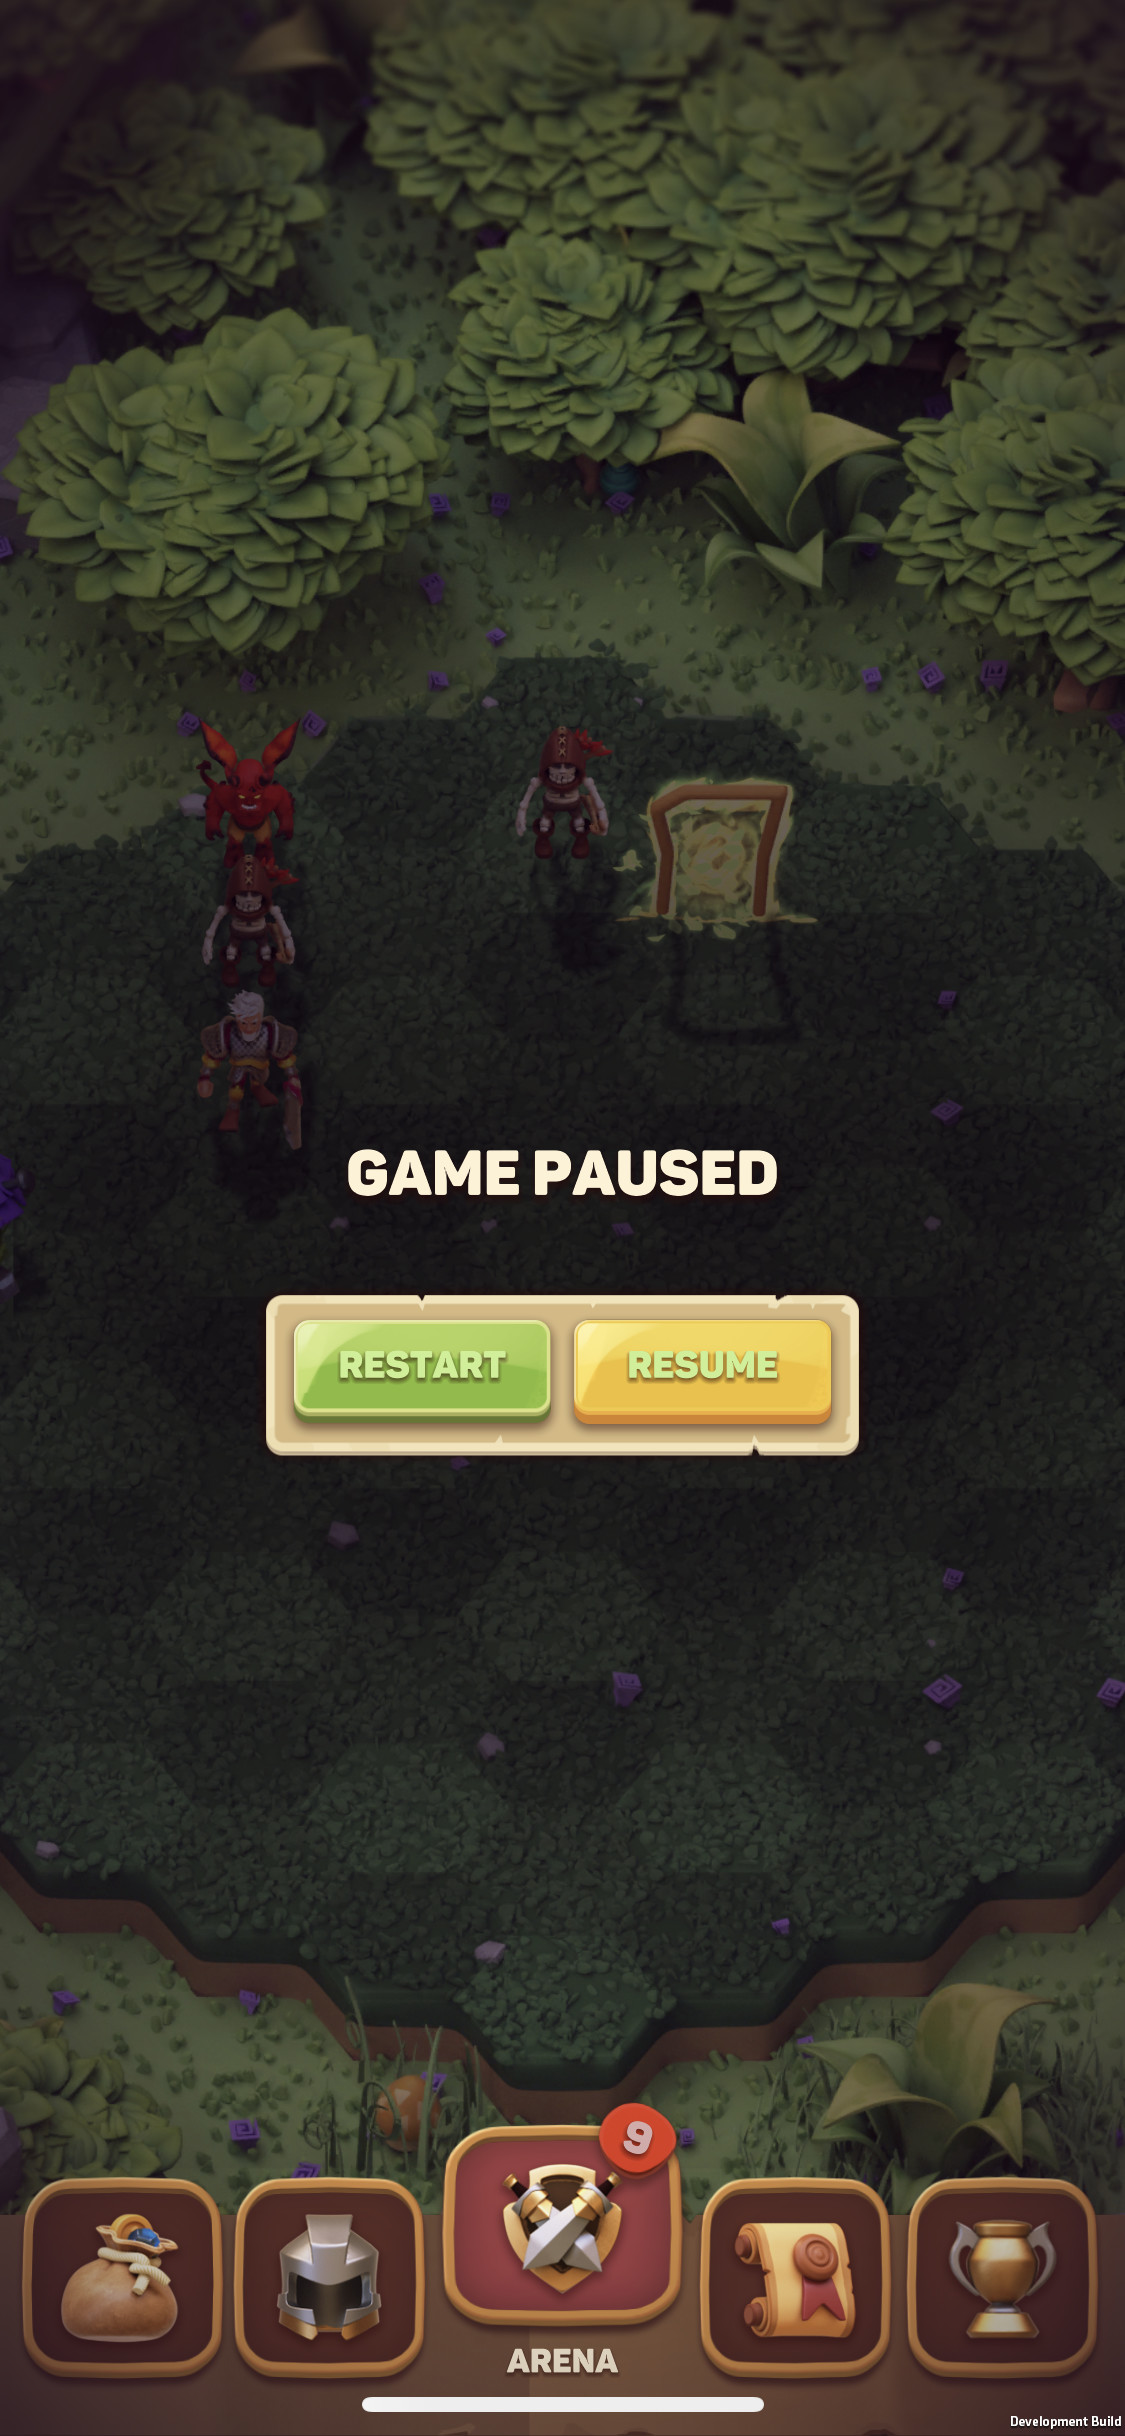 Unnamed Turn-Based Strategy game